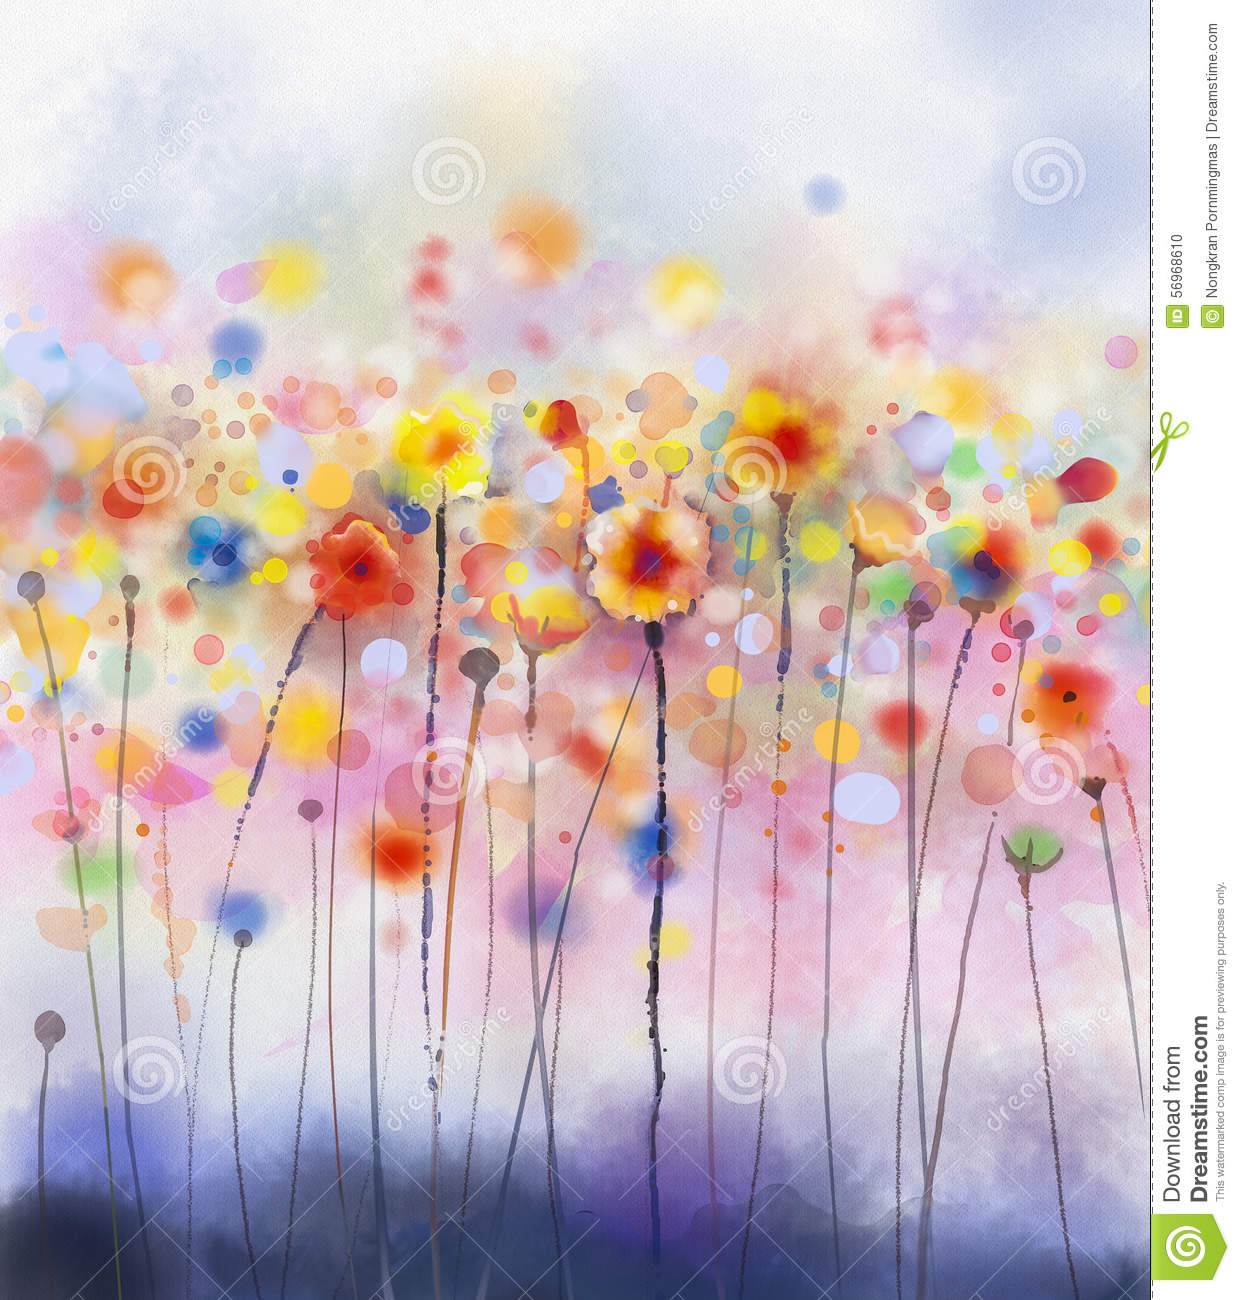 Peinture florale abstraite daquarelle Photo stock